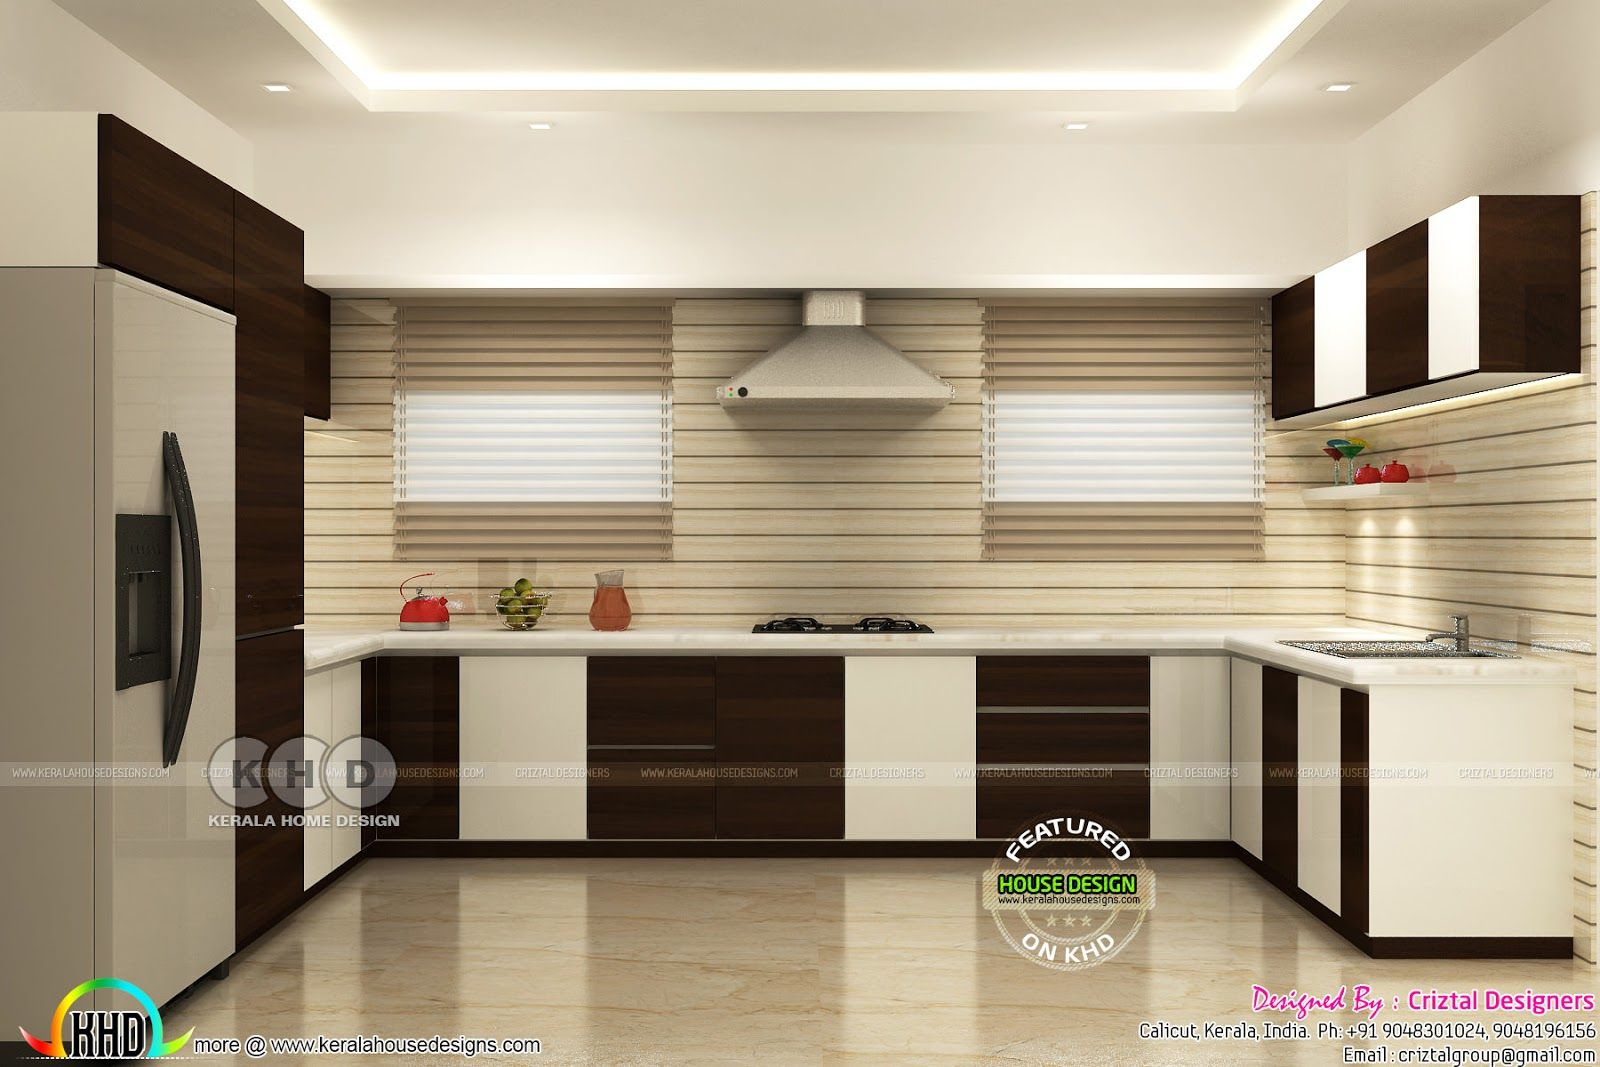 We Ve Gathered Our Favorite Ideas For Kitchen Living Bedroom Interior Designs Kerala Home Ex Bungalow House Design Bedroom House Plans Home Design Floor Plans